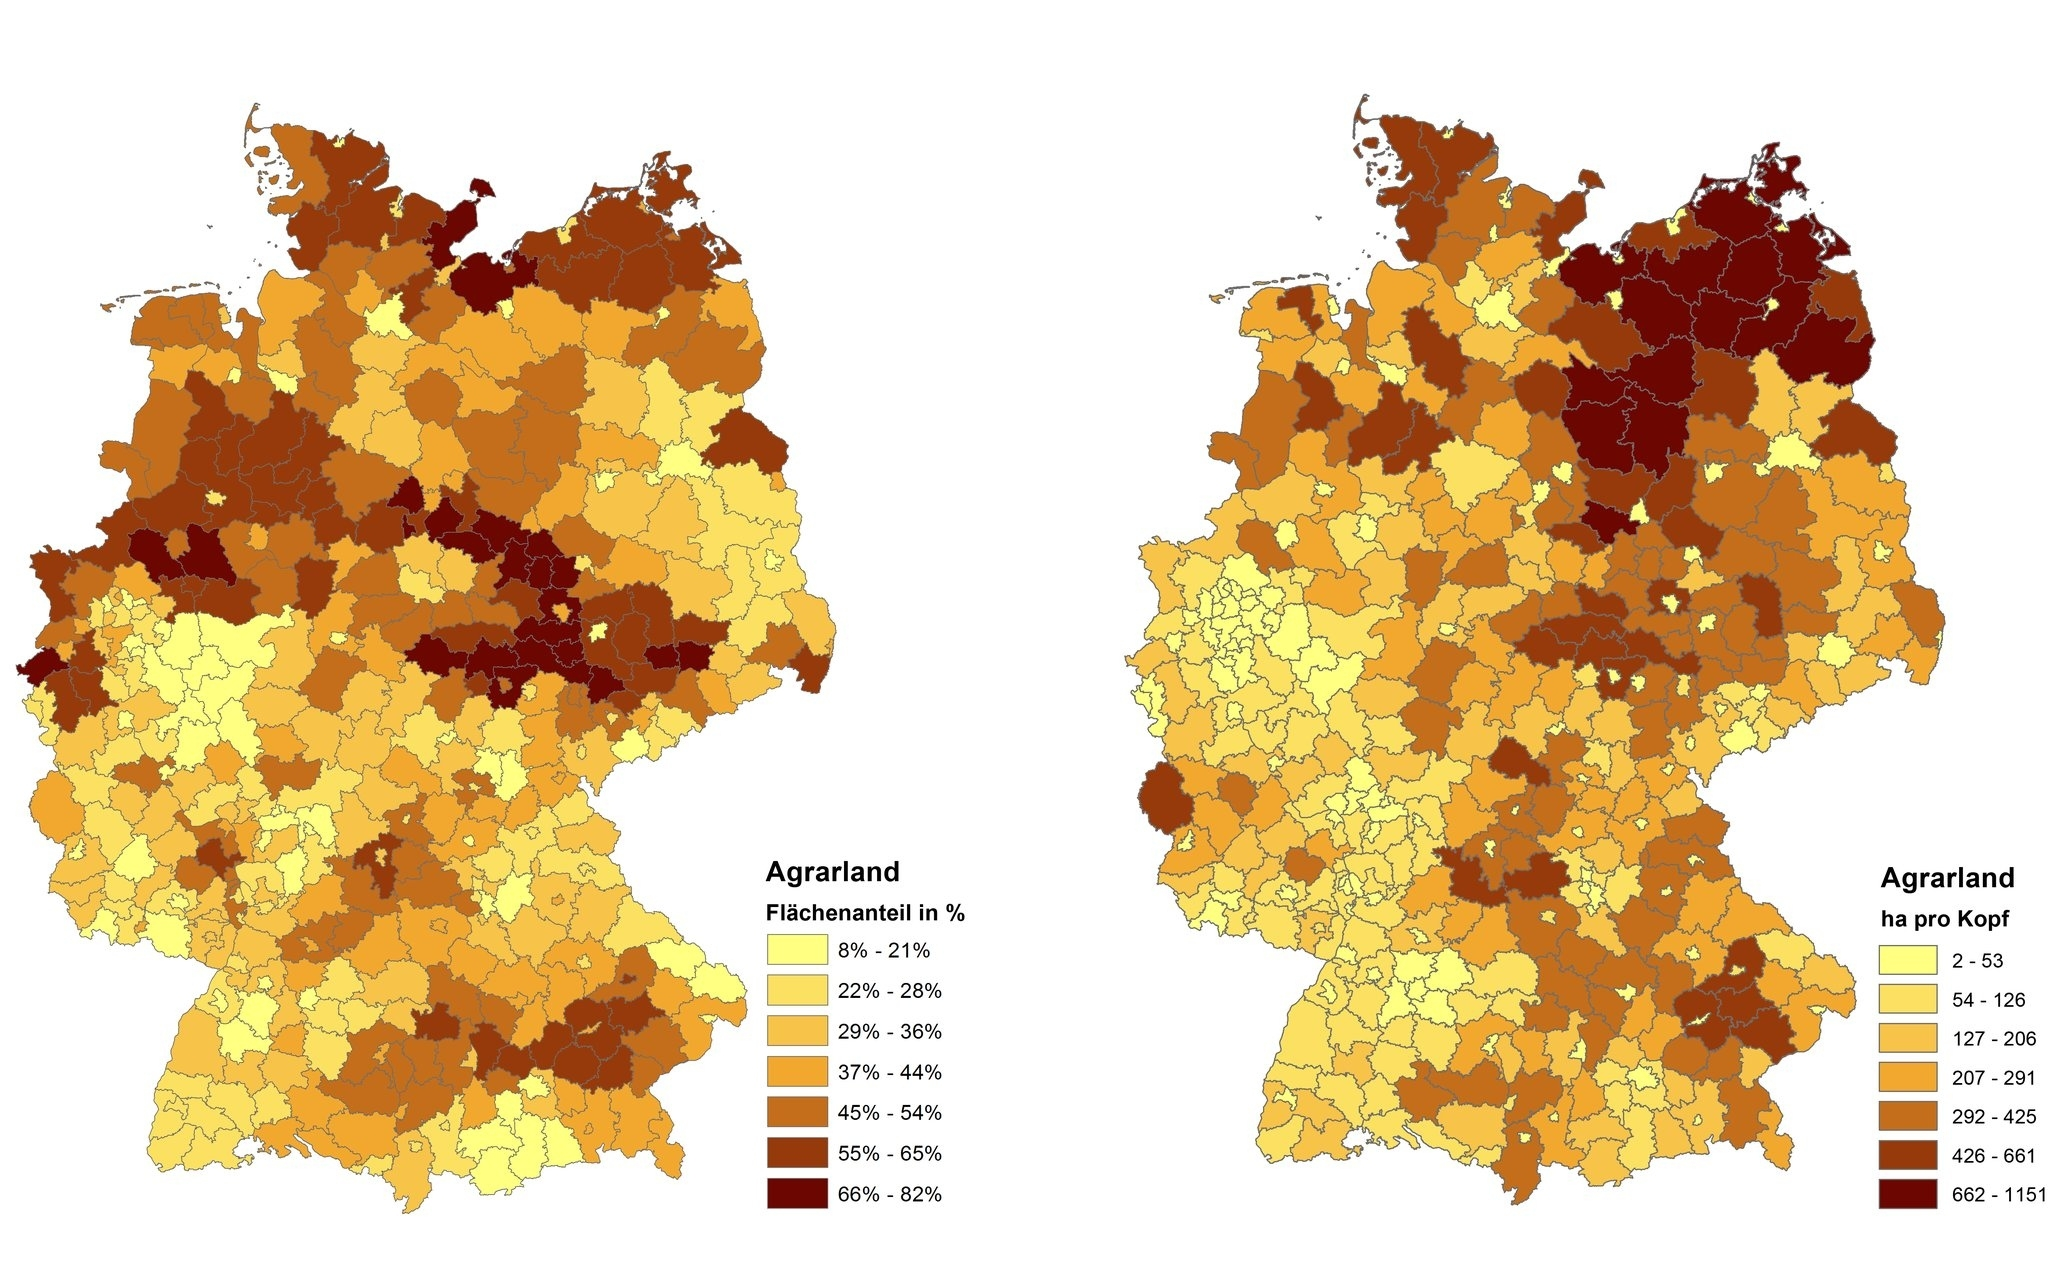 Dlr - Earth Observation Center - New Dfd Land Use And Land Cover Map throughout Germany Land Use Map